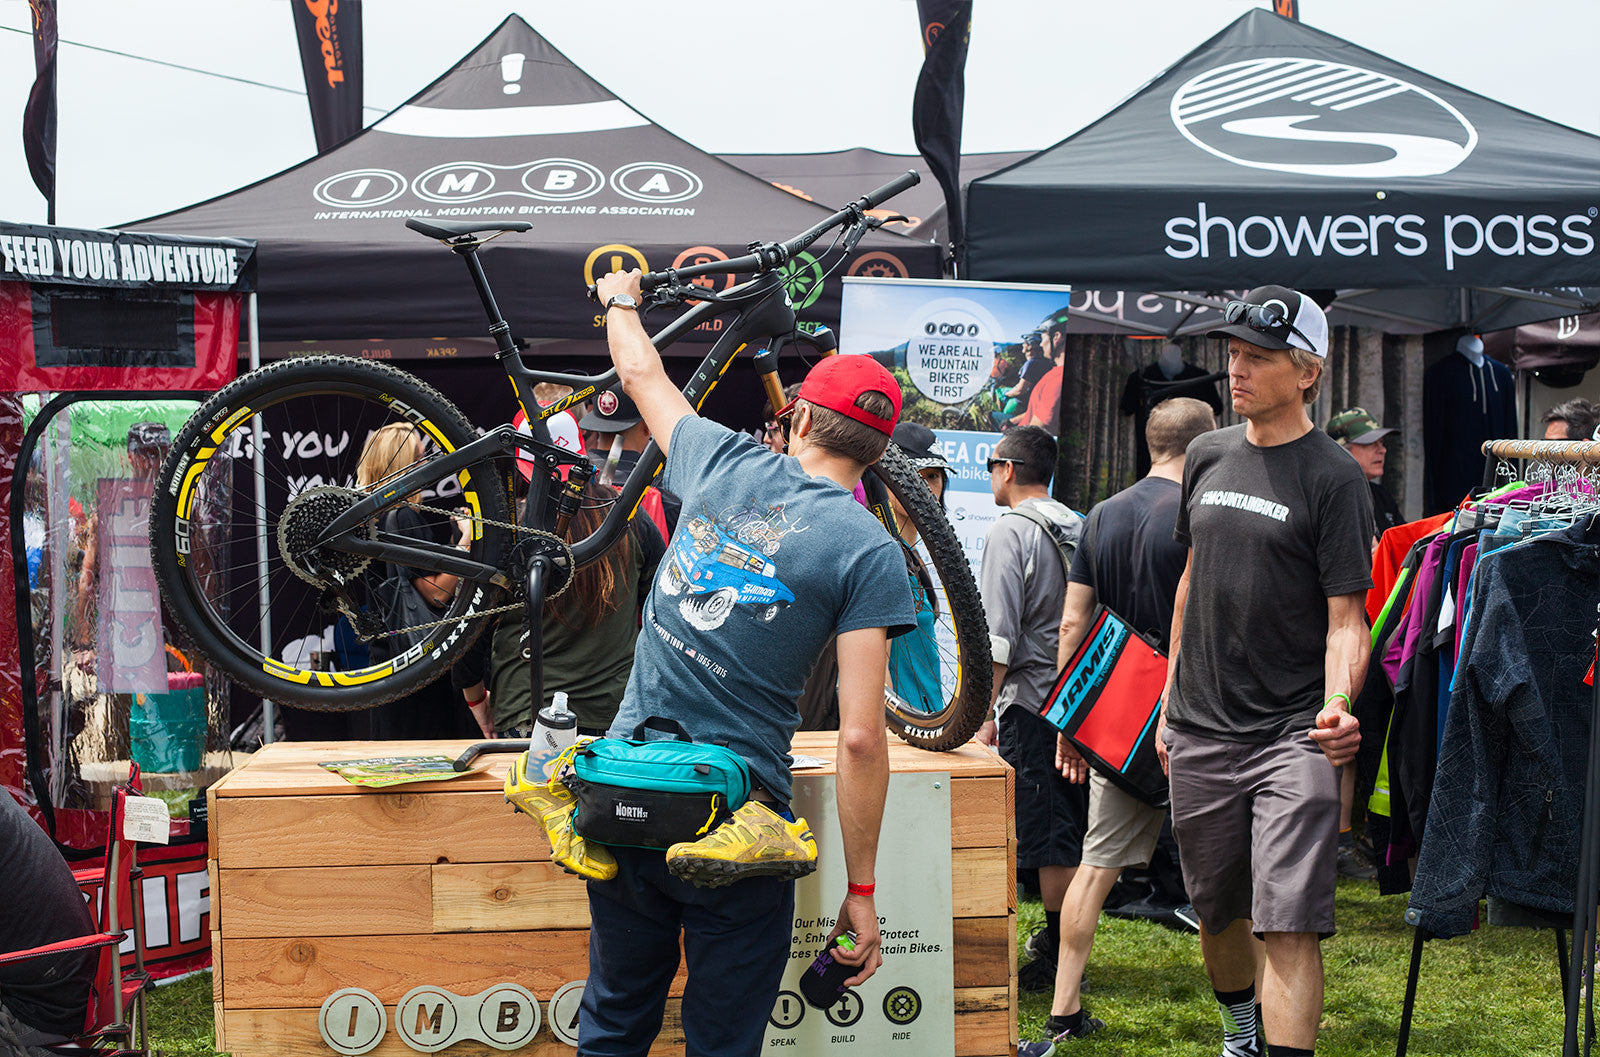 IMBA is raffling off a sweet Niner bike